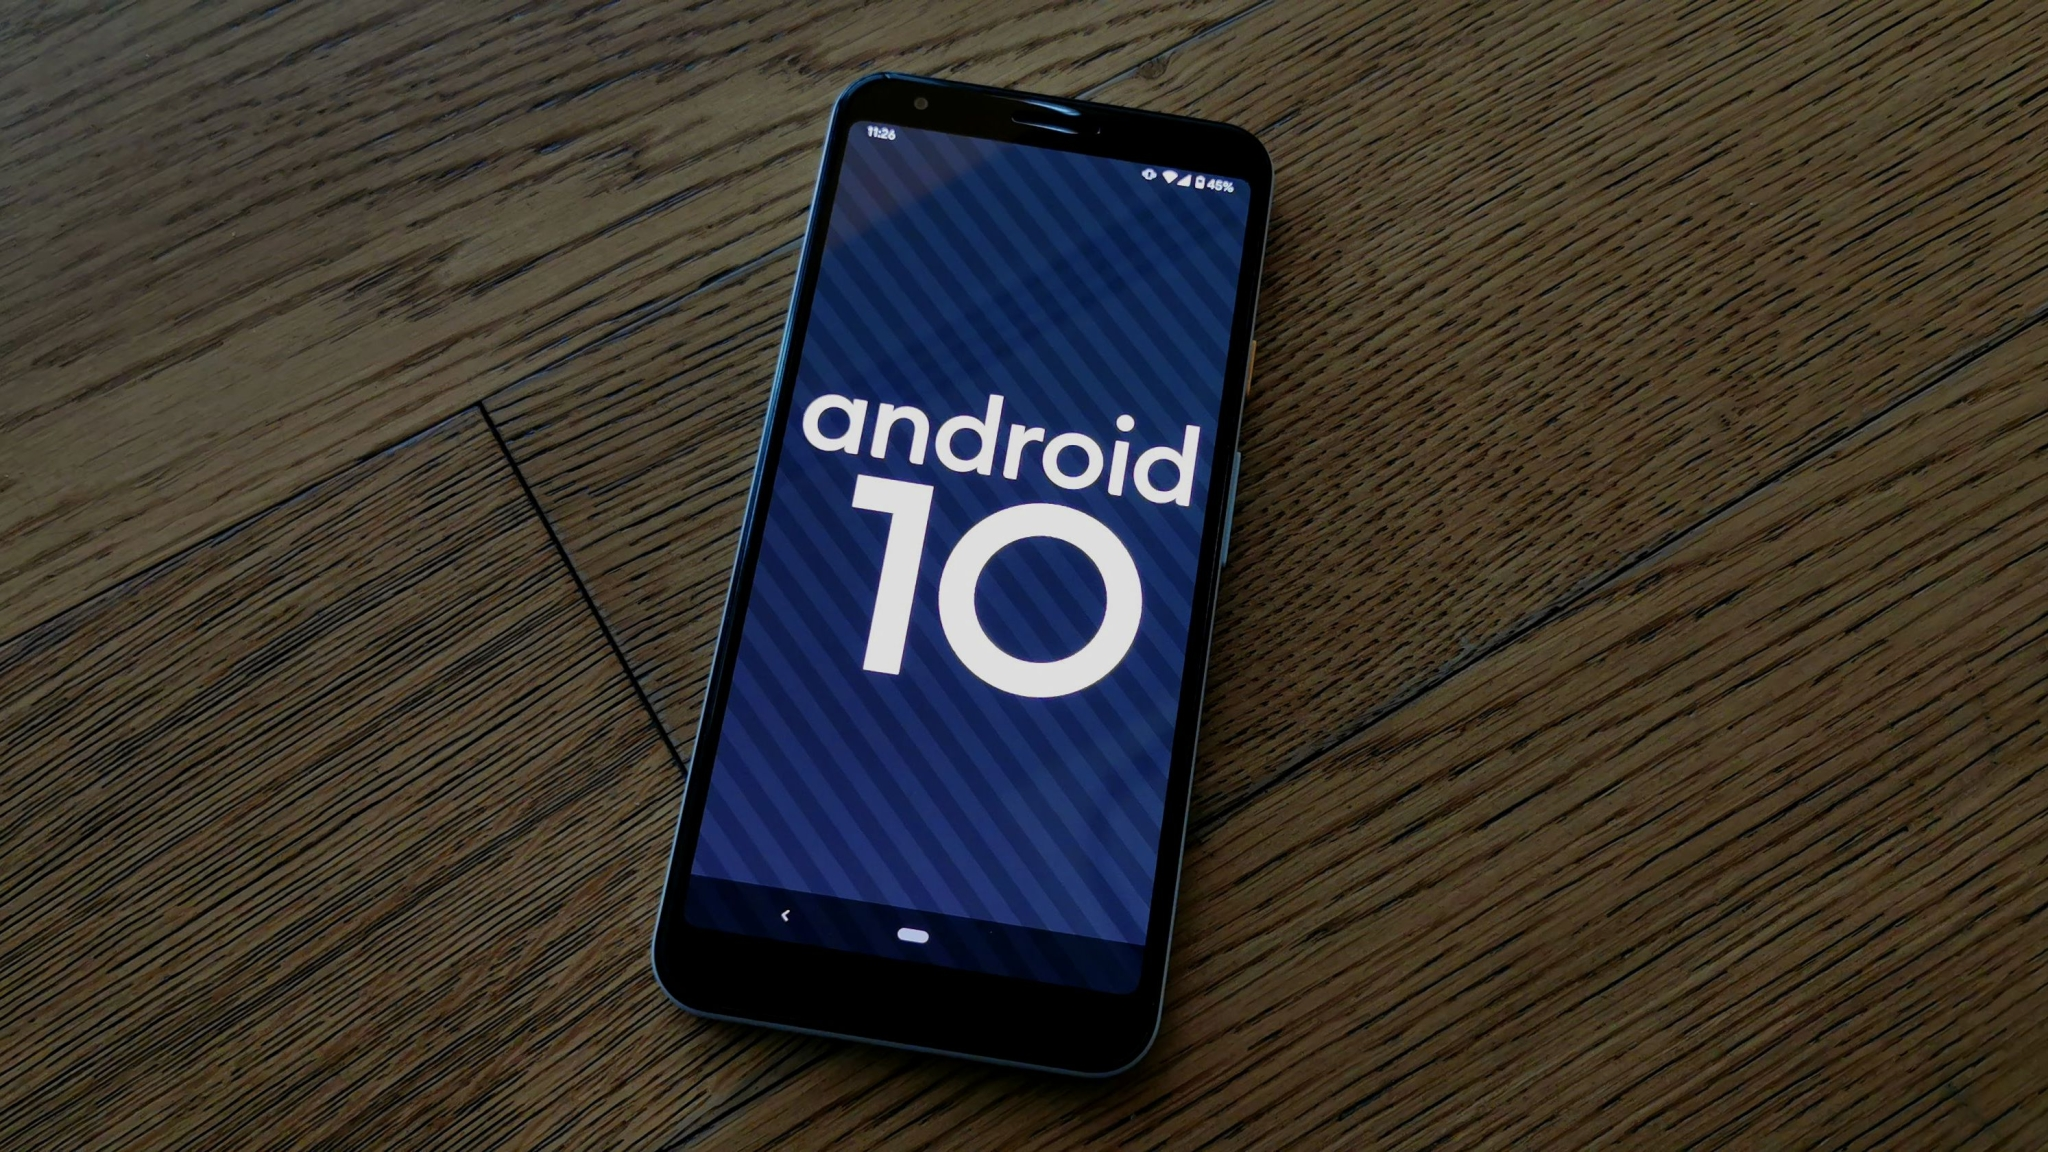 Google Rolls Out Android 10 for Pixel Phones - How to Get It?